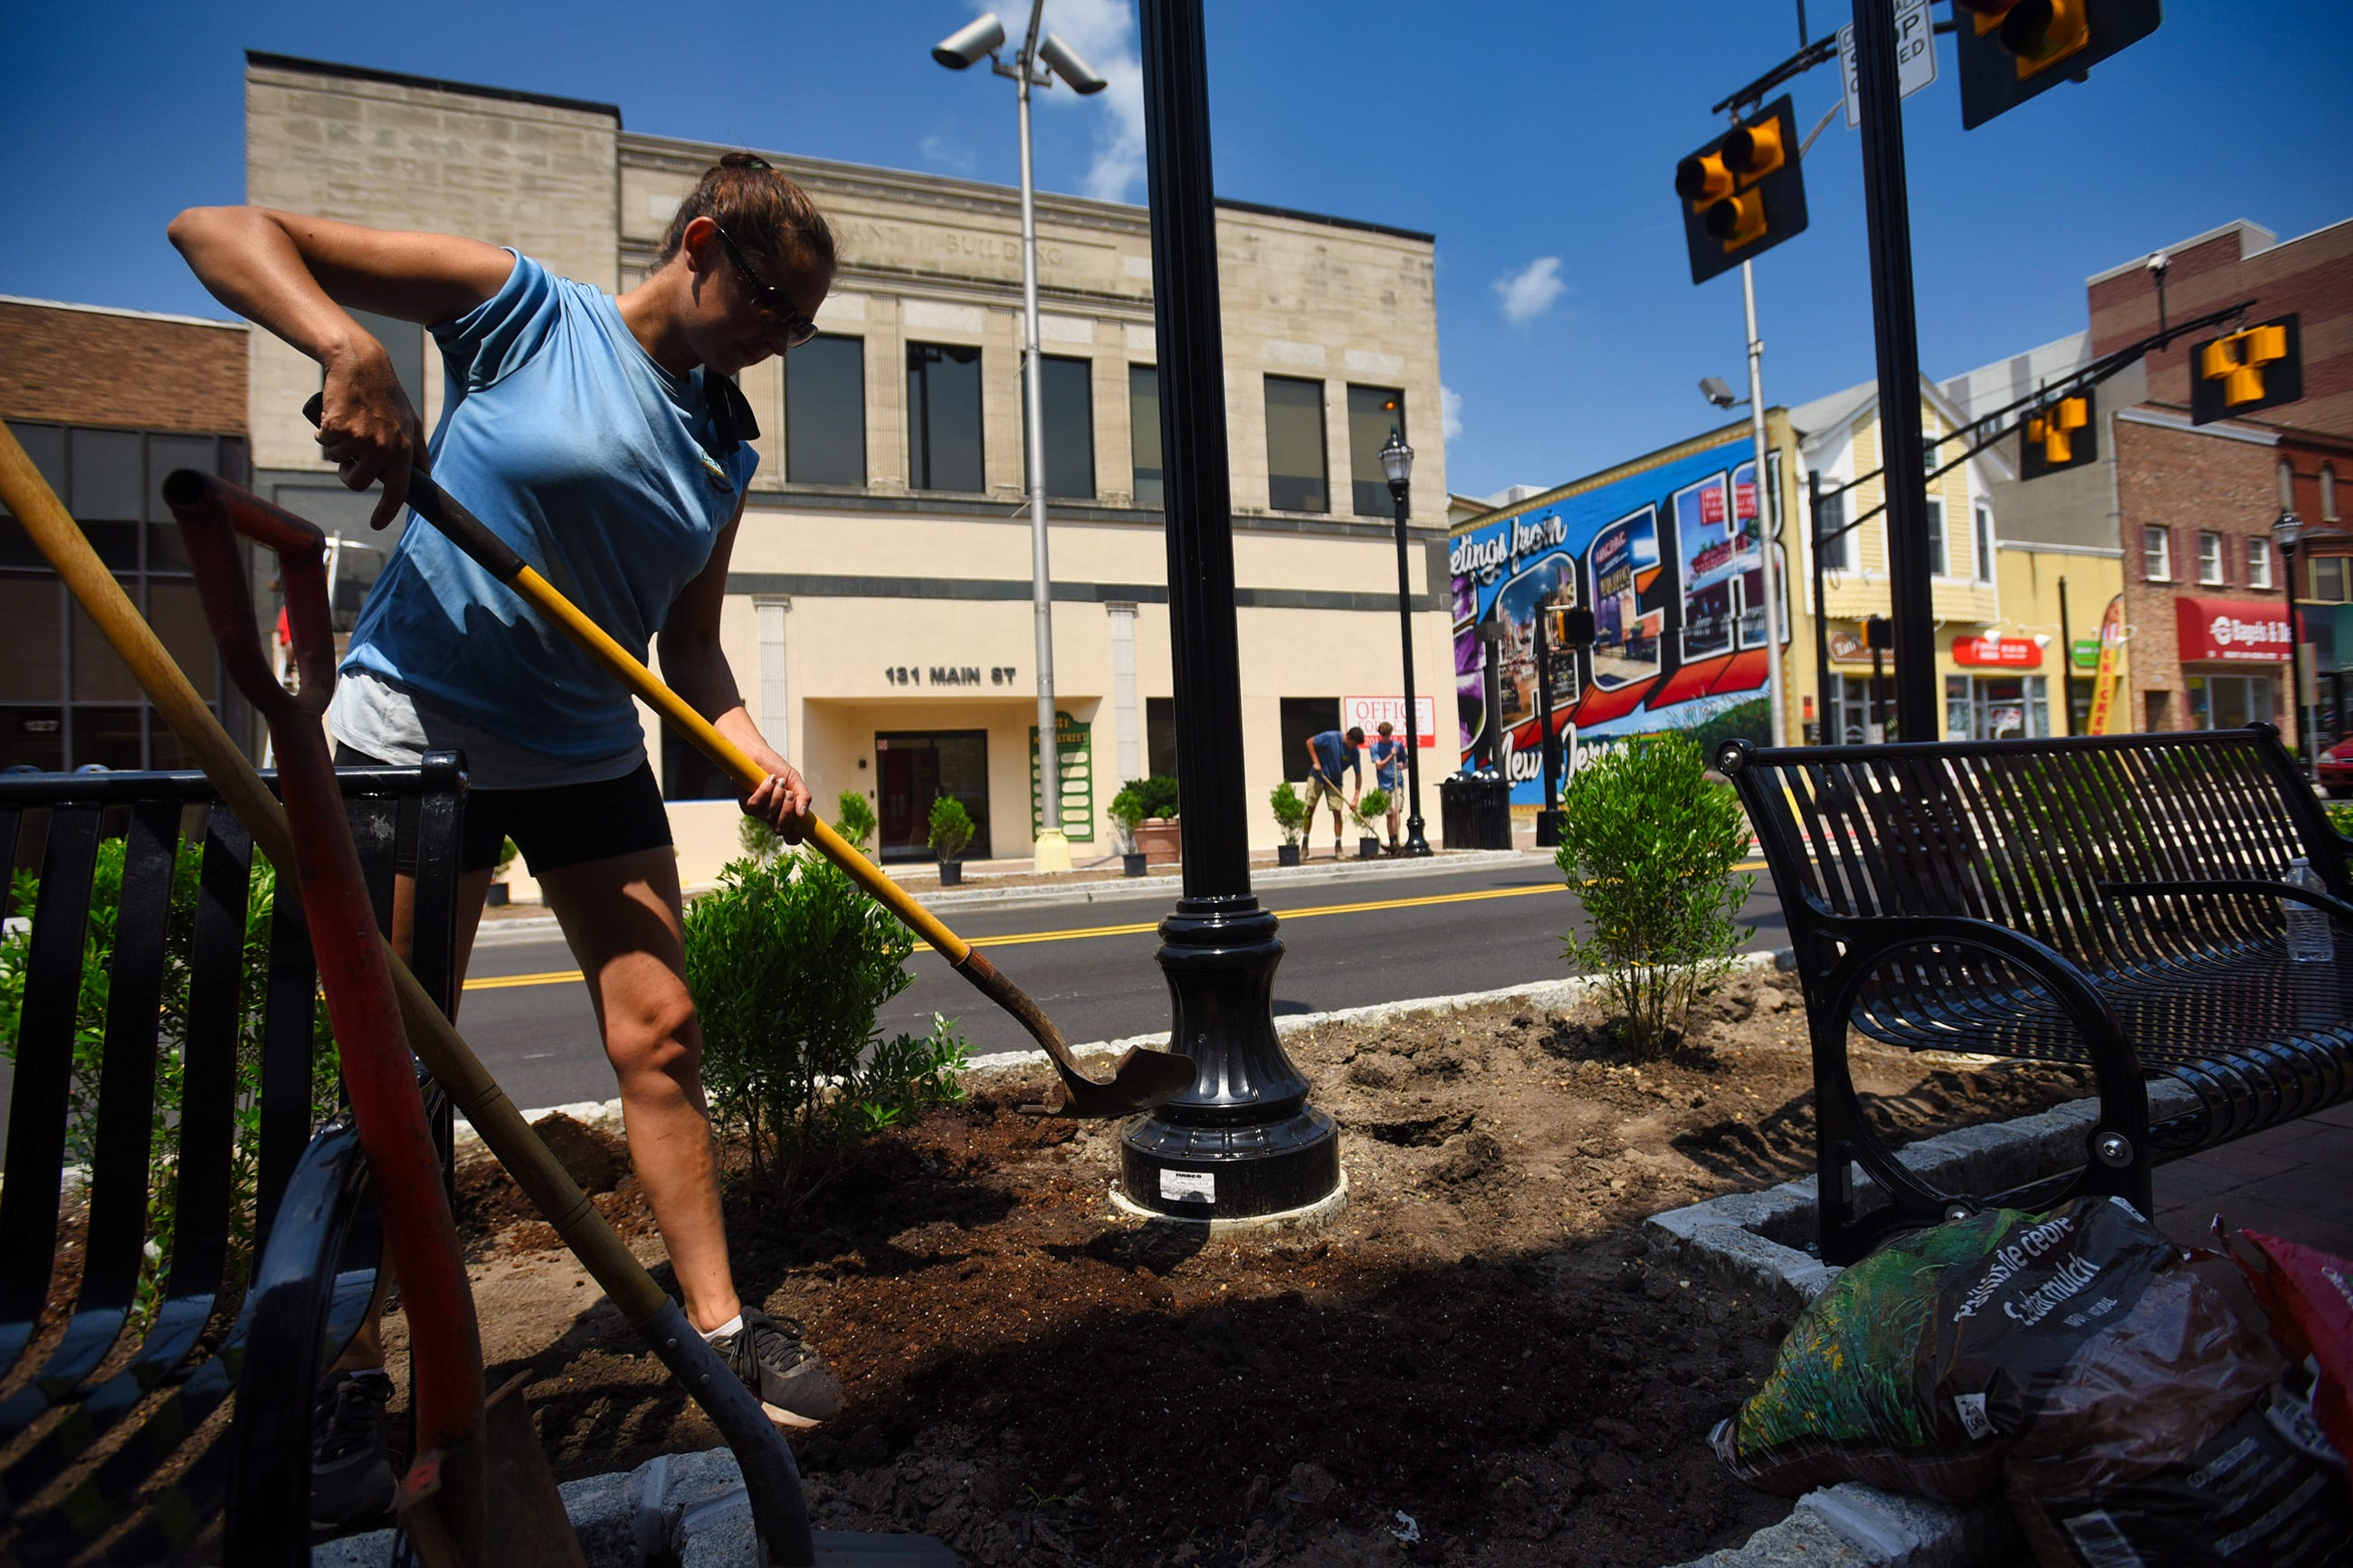 Alex Rakoczy, a Horticulturist, from Cerbo's in Parsippany, digs the ground to plant flowers as she and other co-workers (across the street) work for the city improvement project along Main Street in Hackensack on 07/18/21.